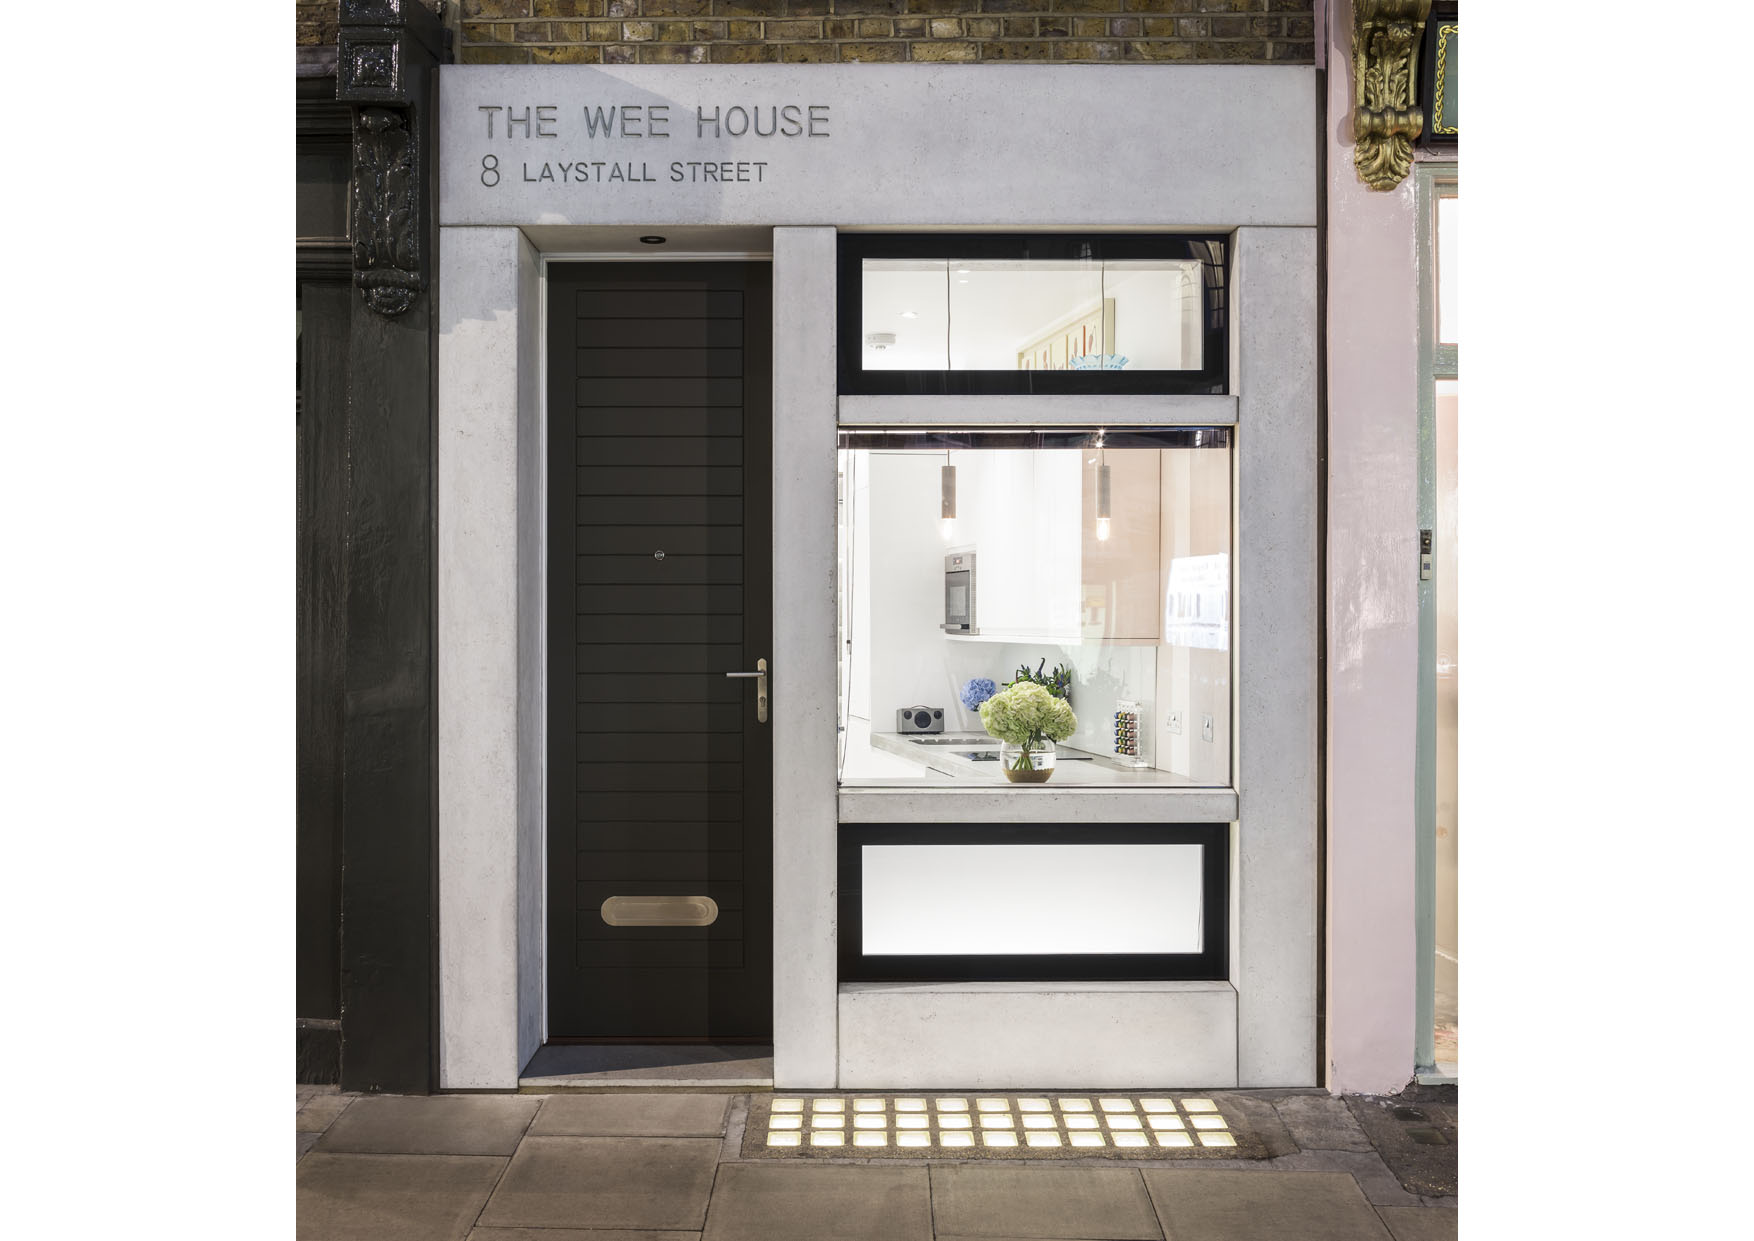 The Wee House commissioned by Beam Projects and Joe Wright Architects